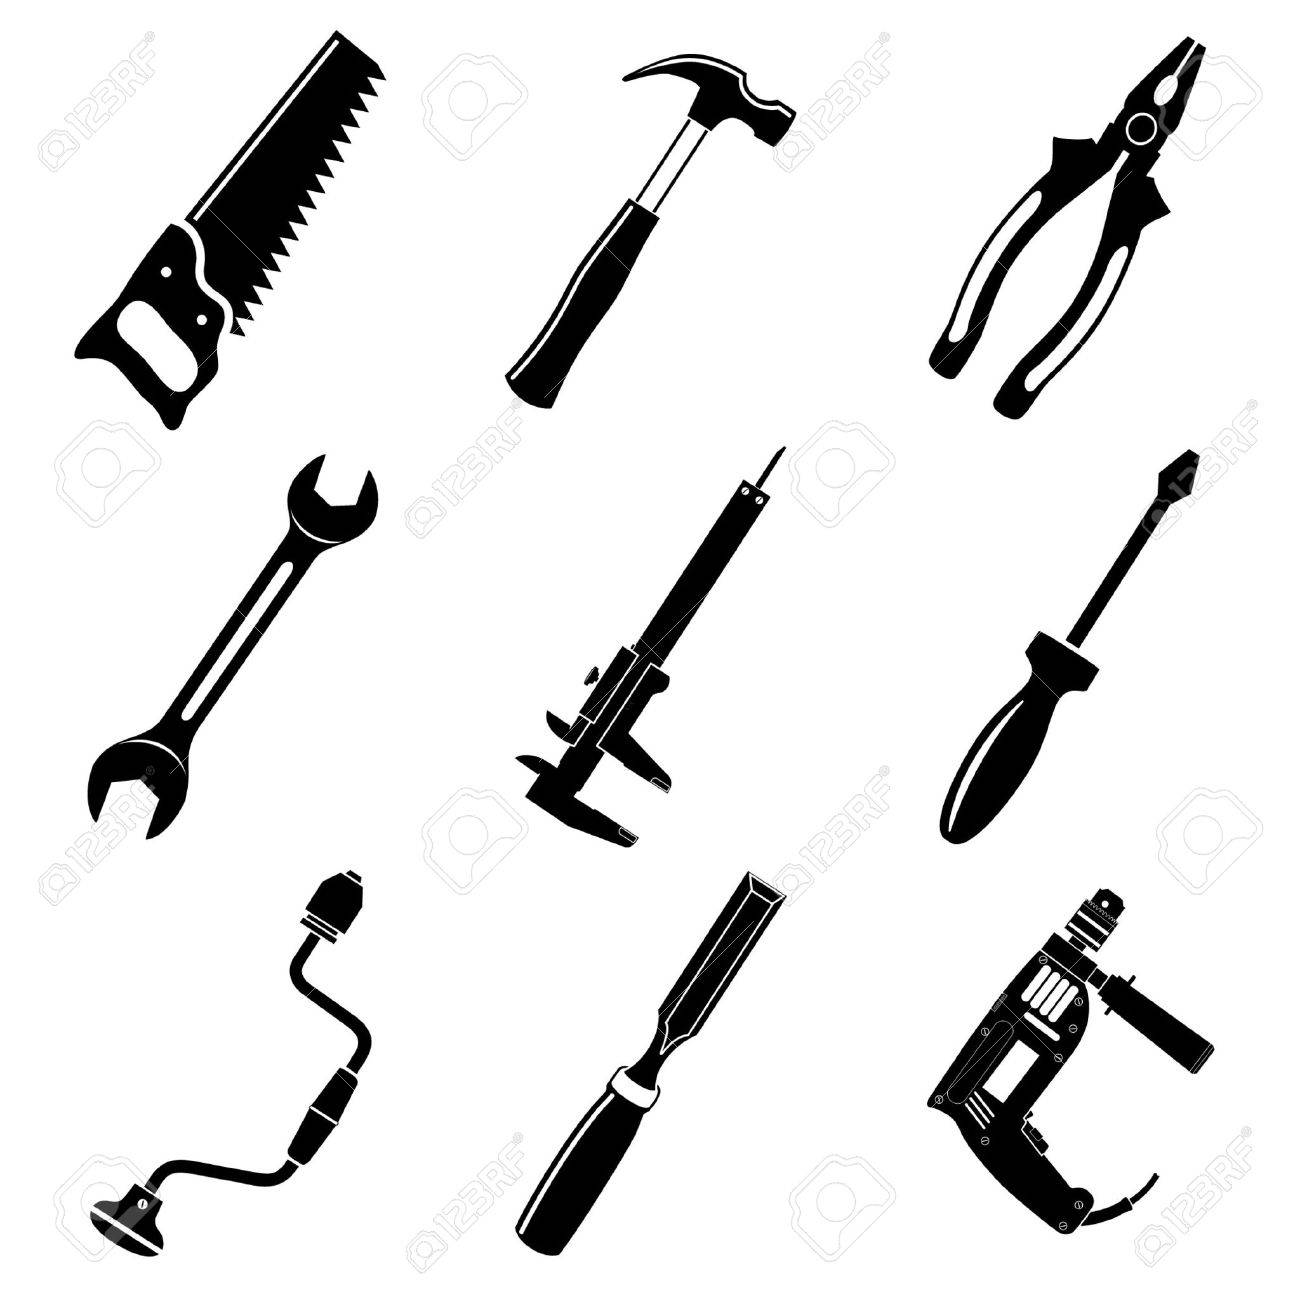 tool icon vector. vector icons of tool stock 7220821 icon o